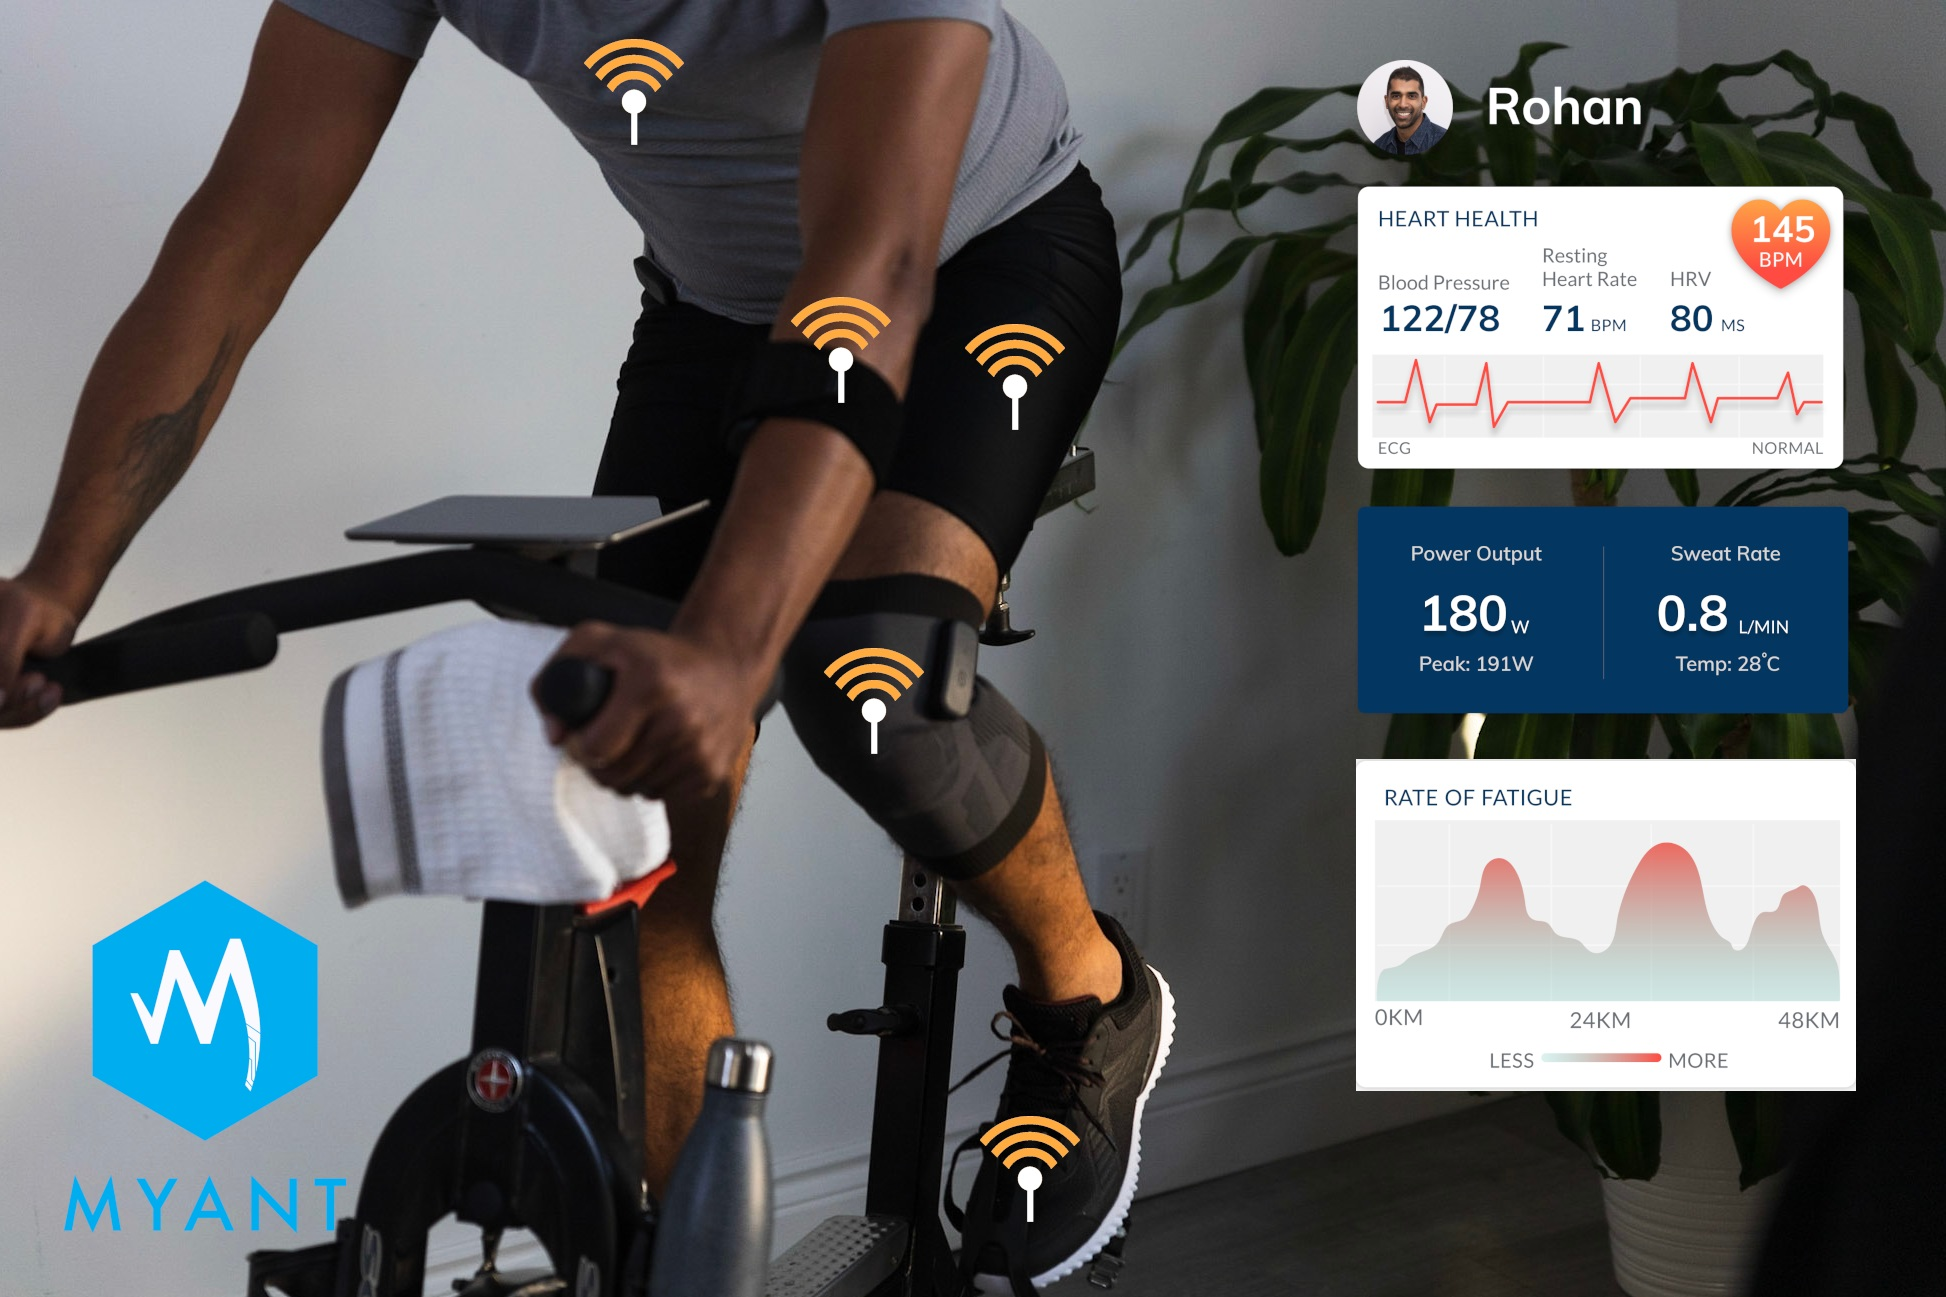 Myant's connected performance lab for athletes